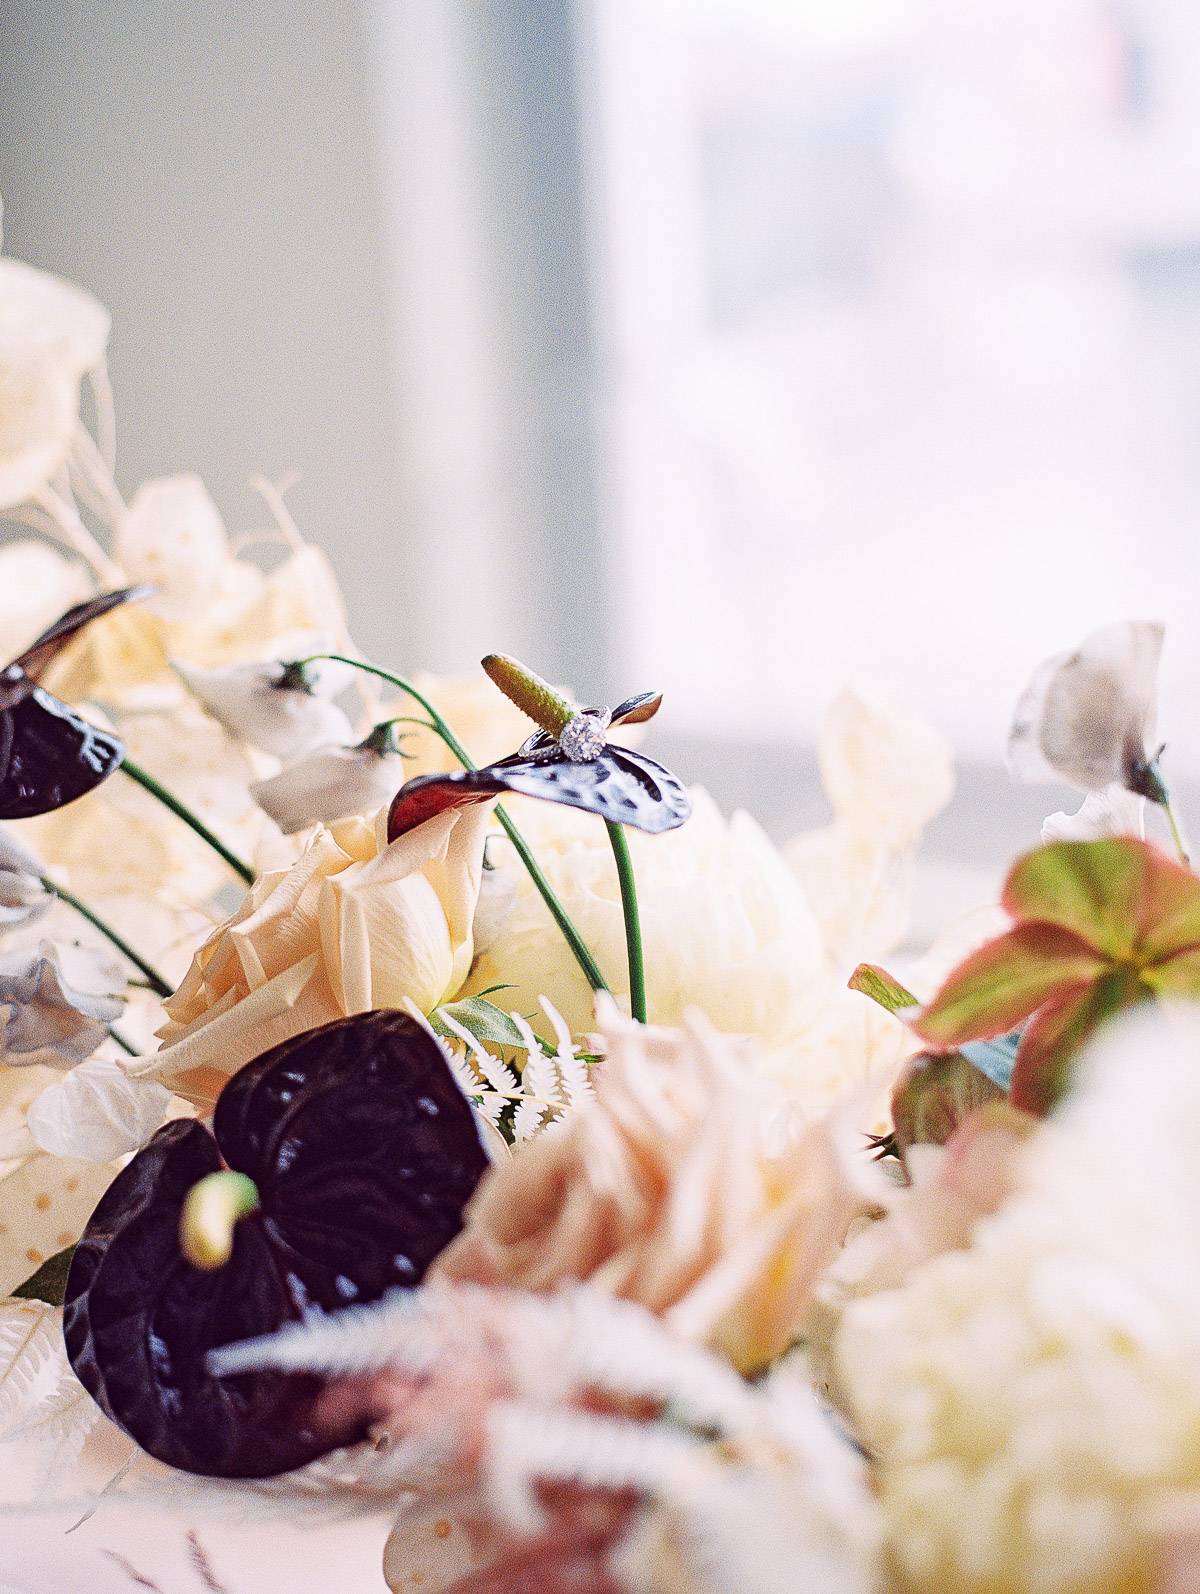 Brides ring sits on the petals of a dark Anthurium plant amidst a floral centerpiece